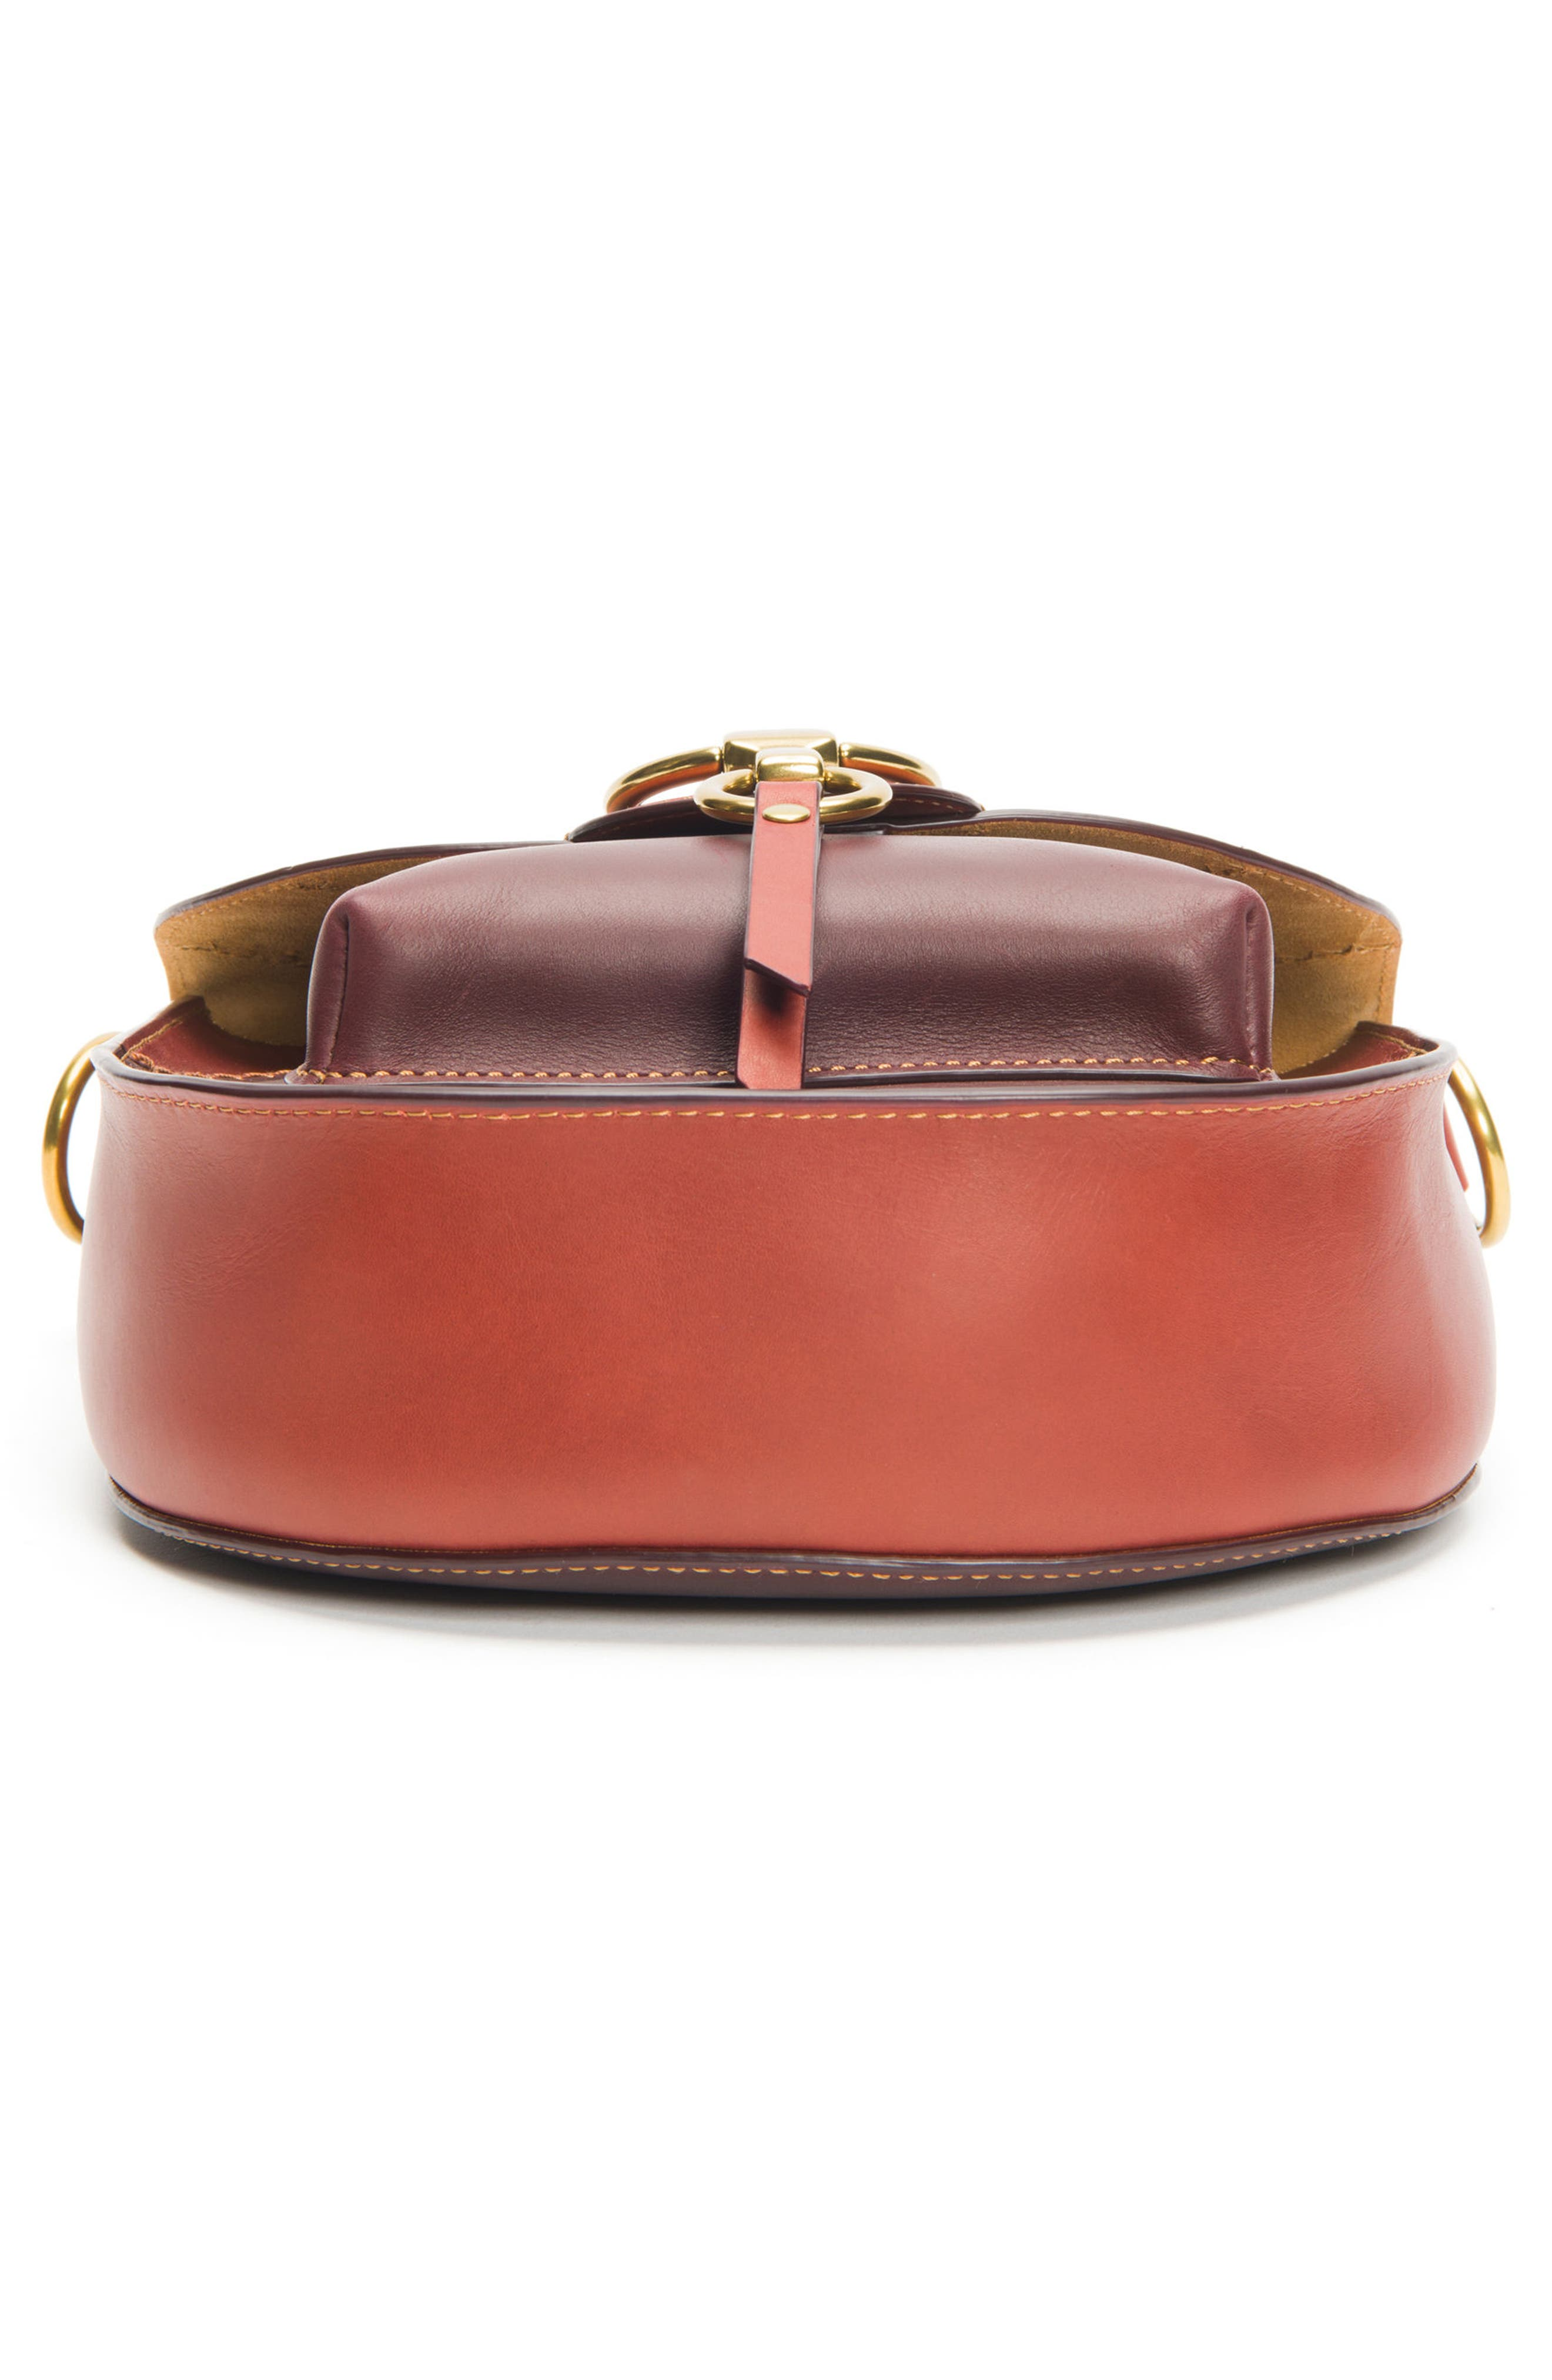 Ilana Colorblock Leather Saddle Bag,                             Alternate thumbnail 6, color,                             Red Clay Multi